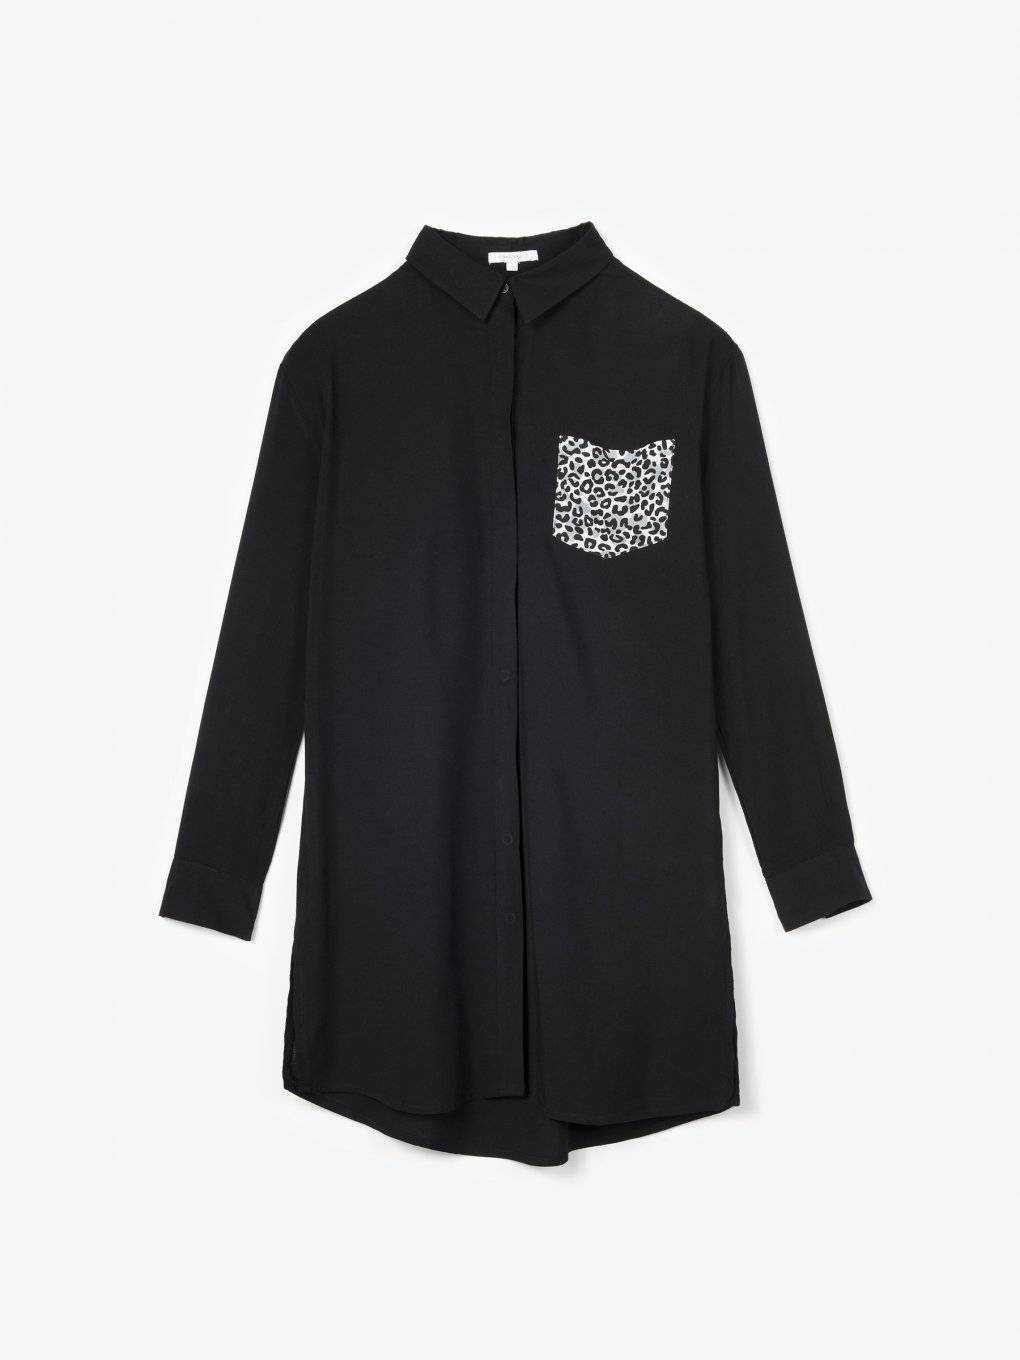 Longline viscose shirt with animal print on chest pocket